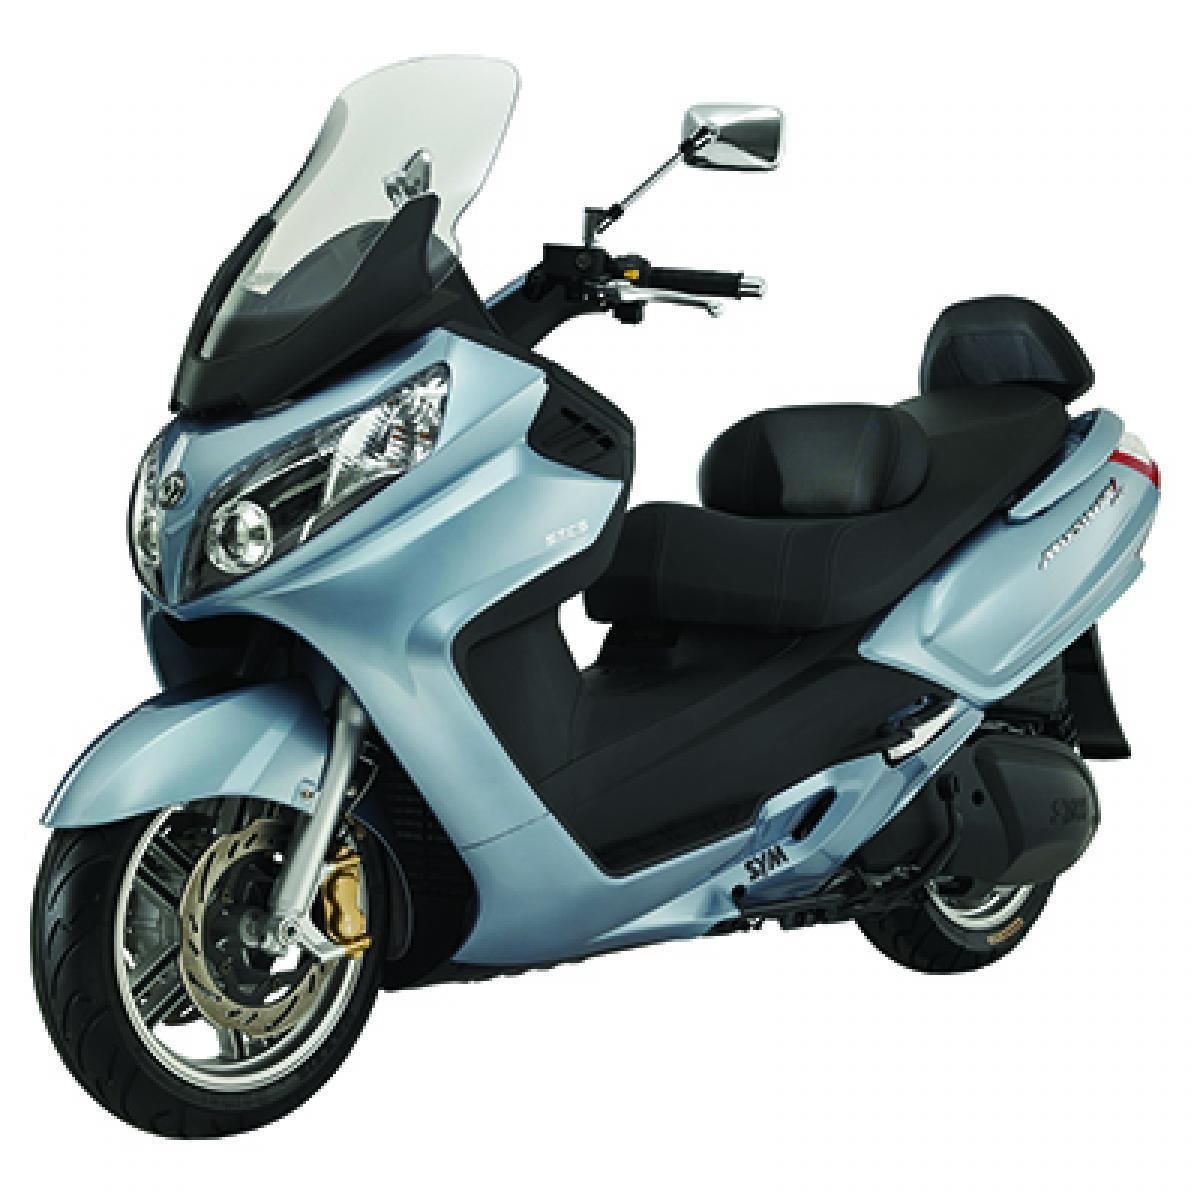 NEW 2014 SYM MAXSYM 600i ABS SCOOTER